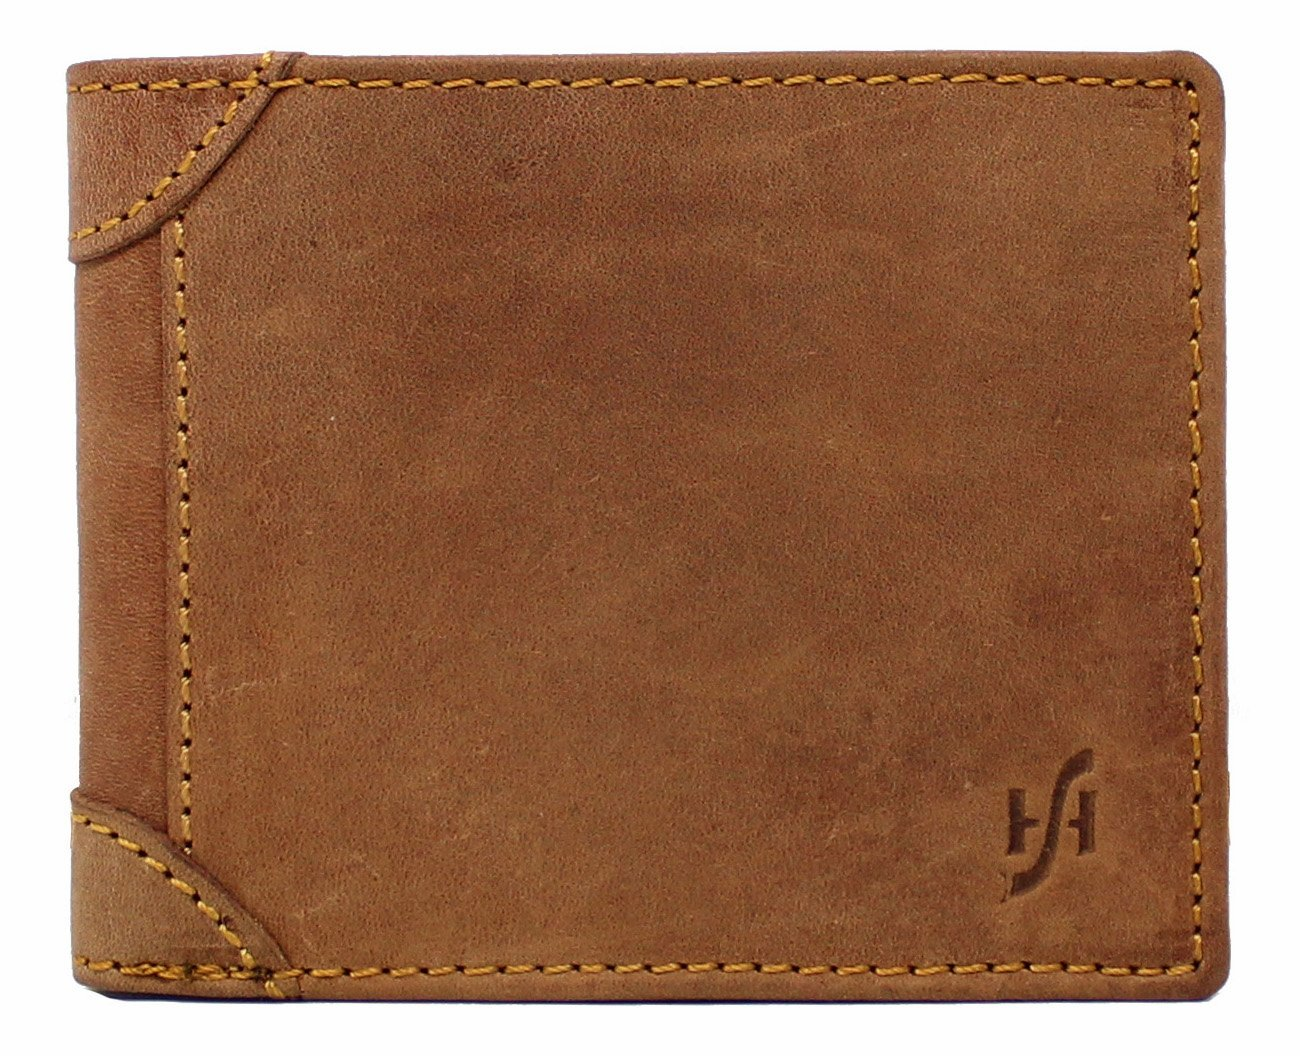 StarHide Mens RFID Blocking Leather Wallet Cards, Photo, Id, Cash - 1145 (Brown)